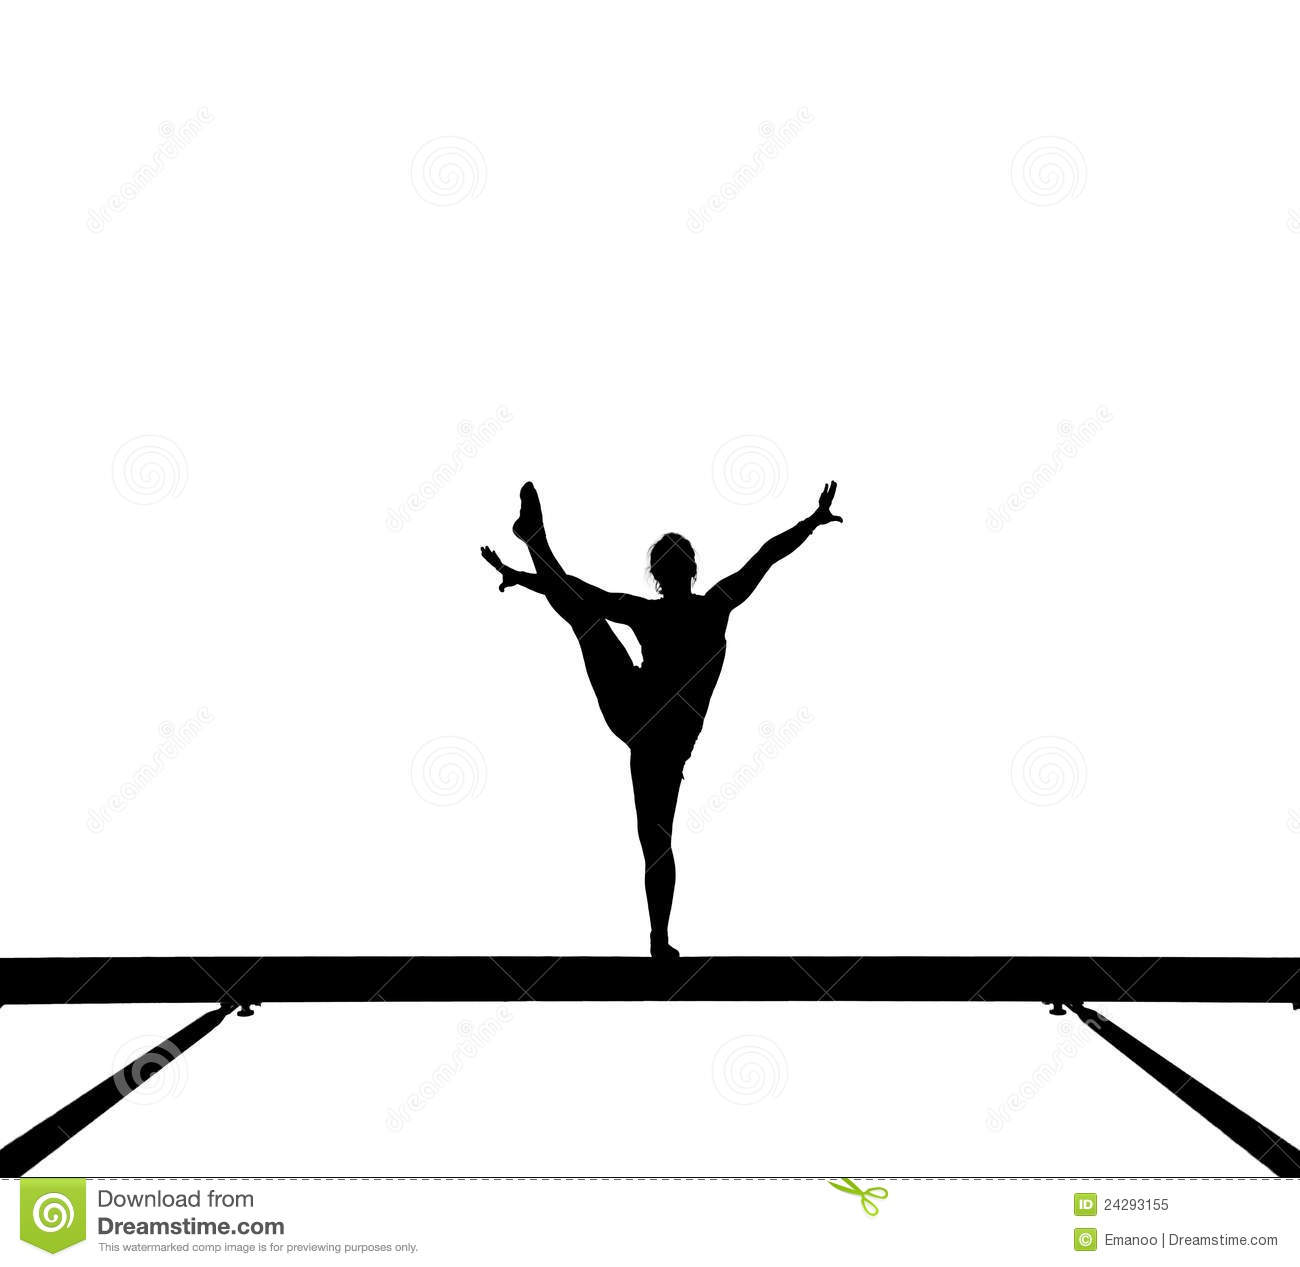 Silhouette Of Female Gymnast On Balance Beam Stock Image